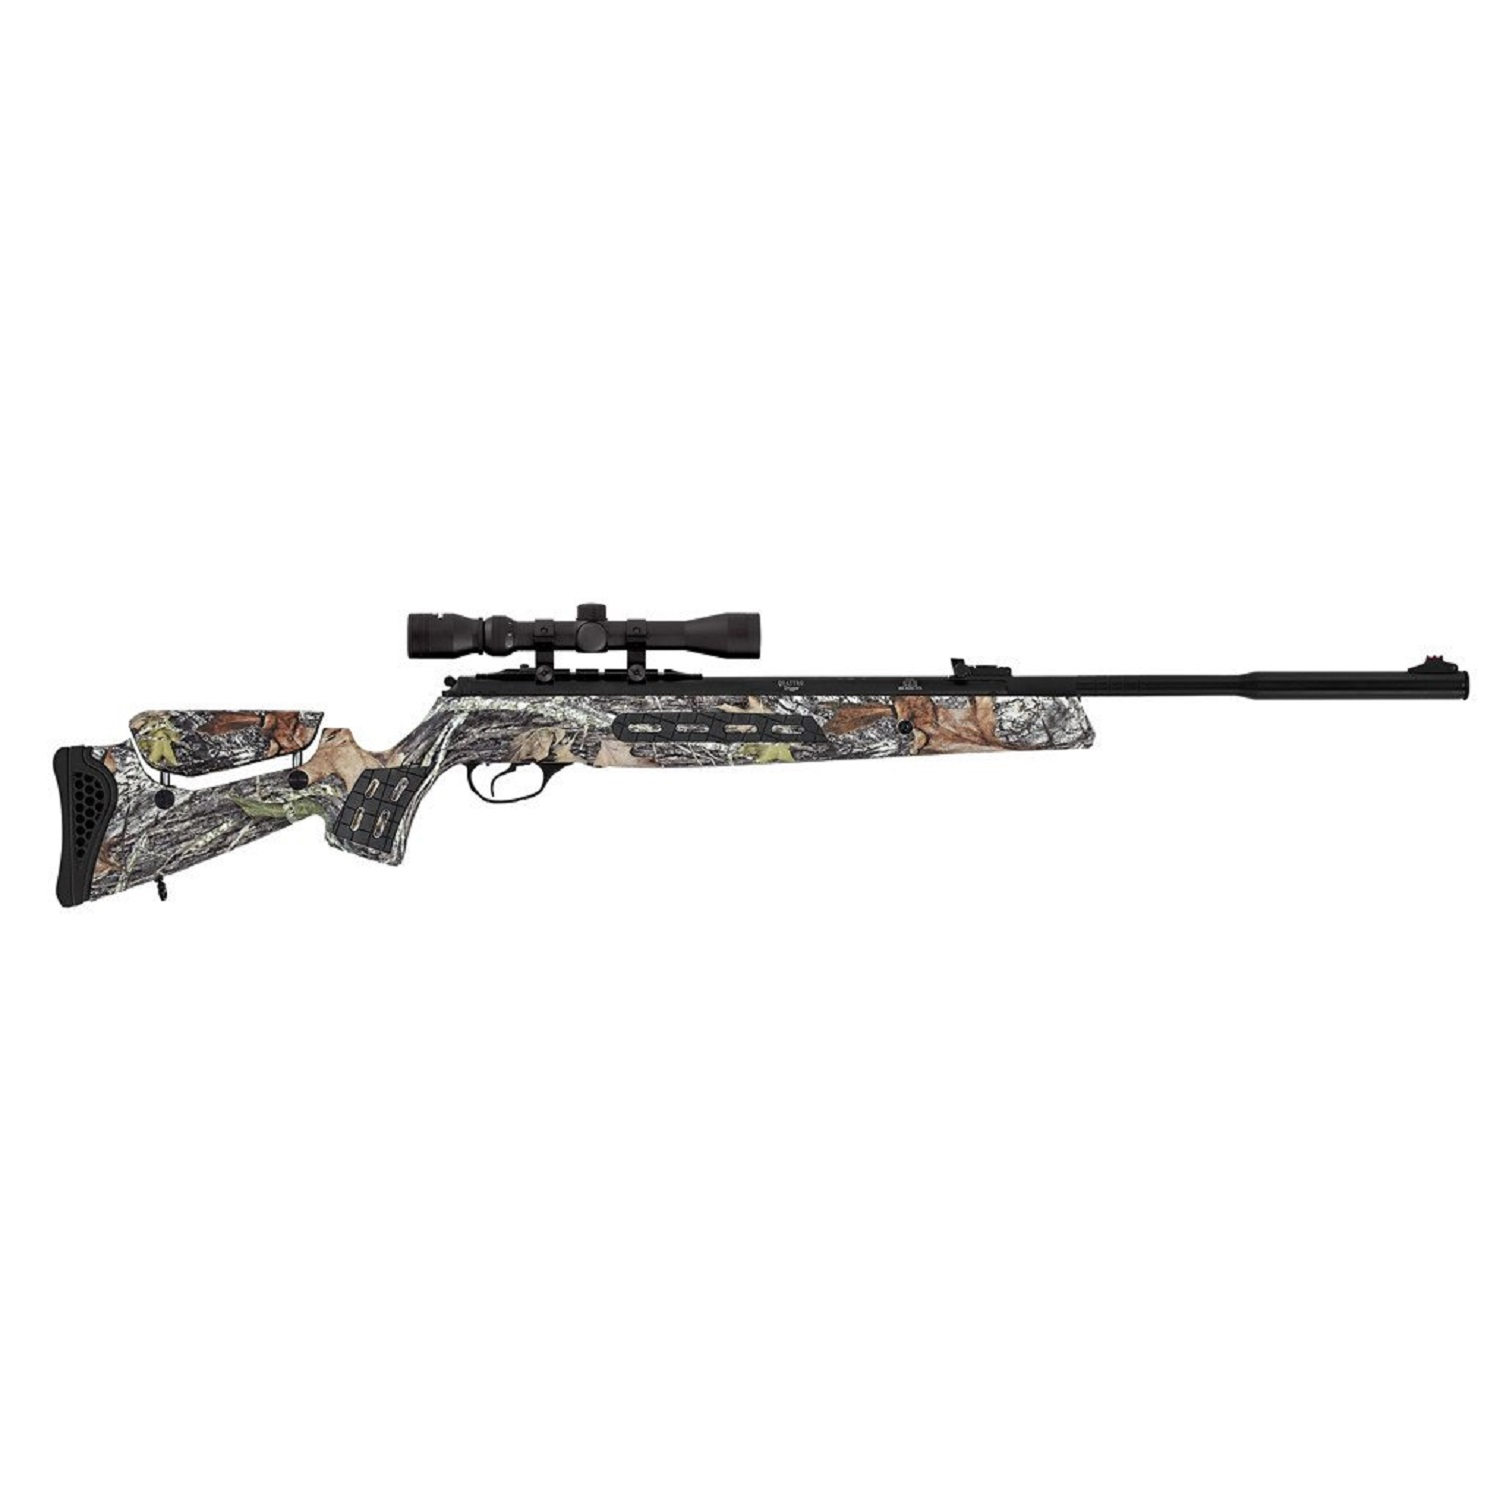 Hatsan Mod 125 Sniper Vortex QE .177 Caliber-Scope Camo